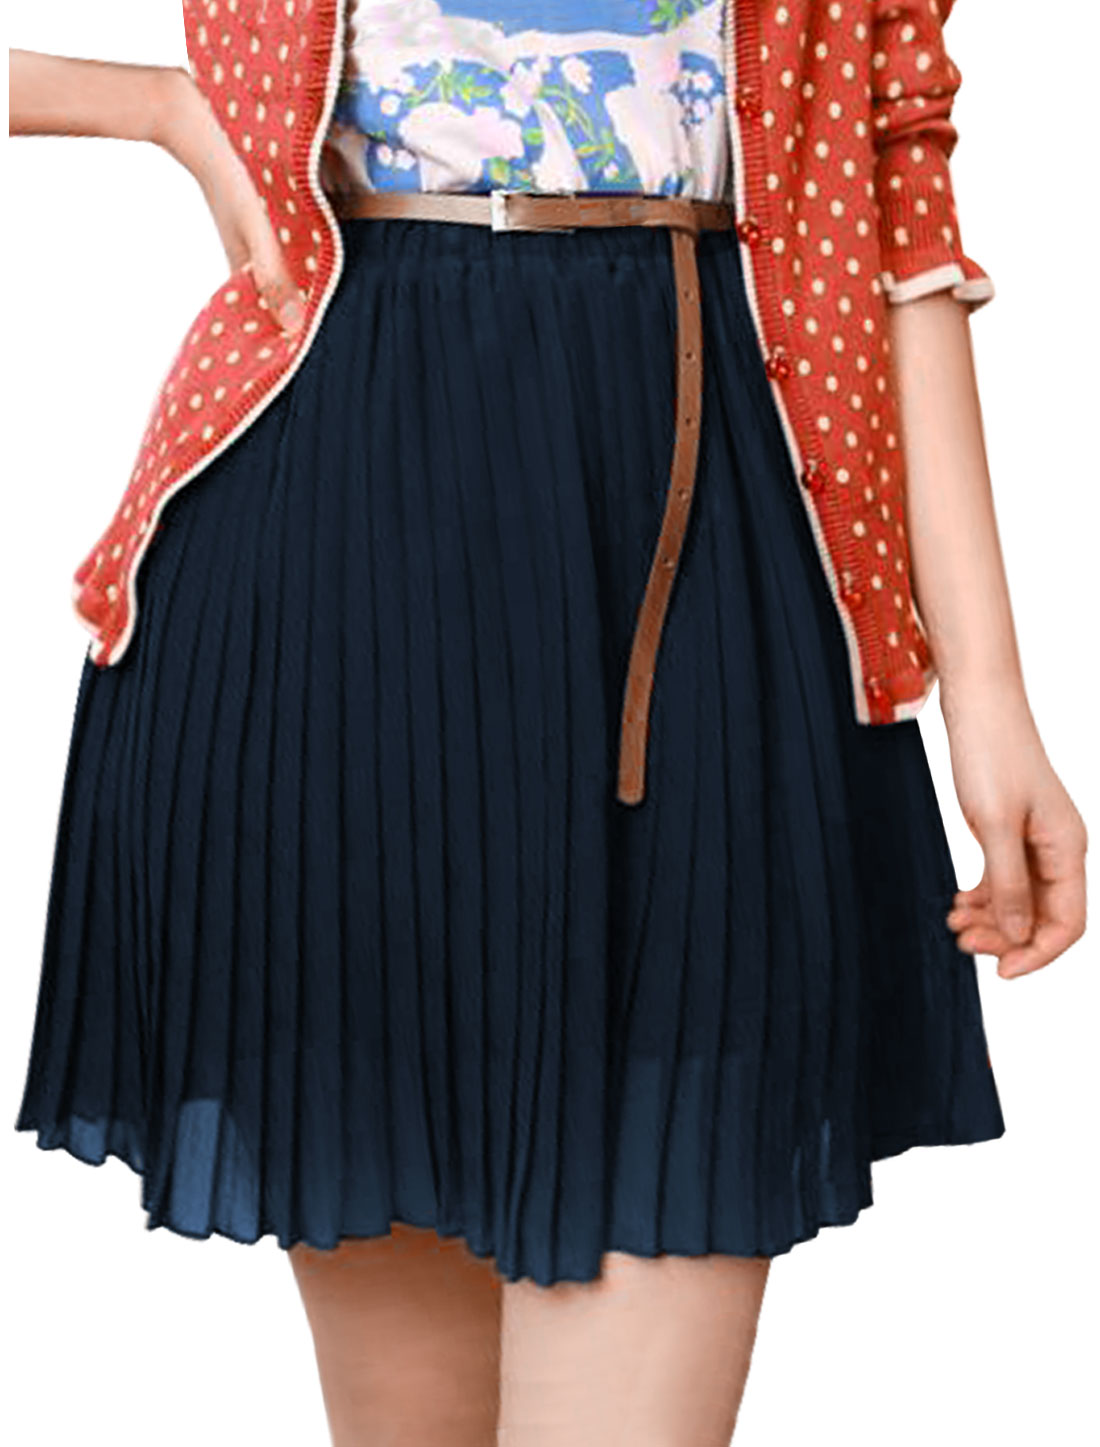 Ladies Dark Blue Pure Color Elastic Waist Pleated Skirt XS With a Buckle Belt